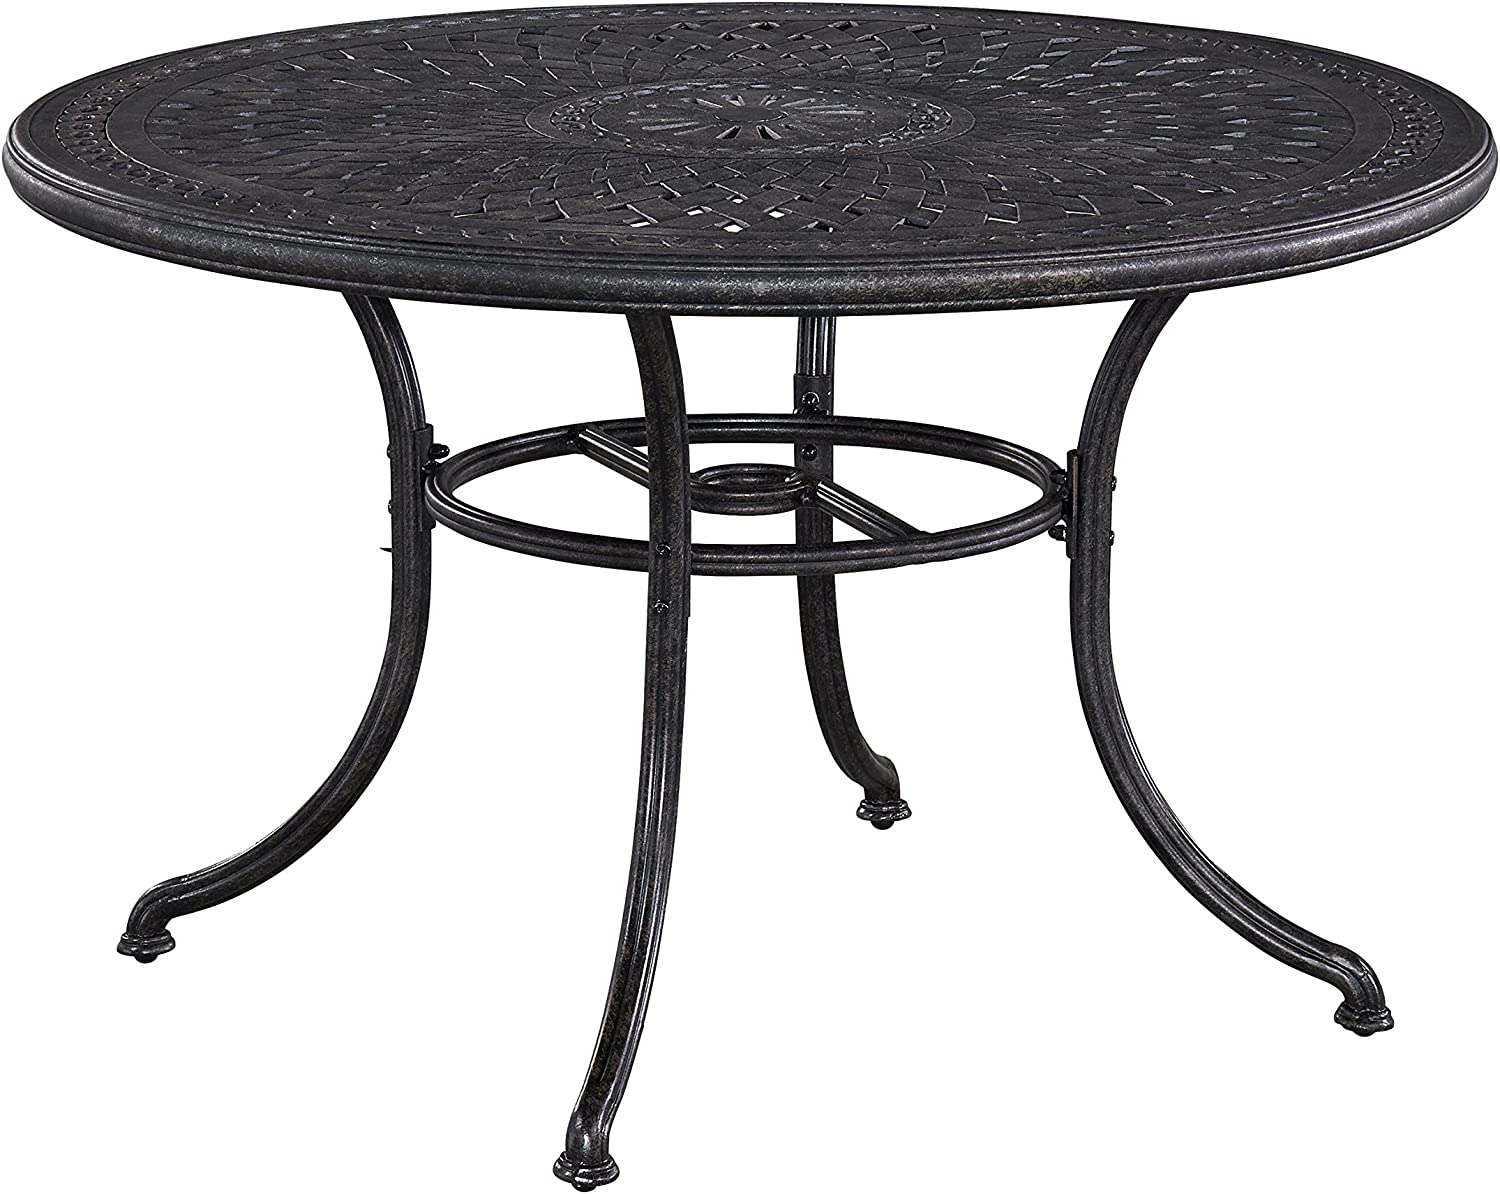 Athens Antique Charcoal Finish 48 Outdoor Round Dining Table by Home Styles